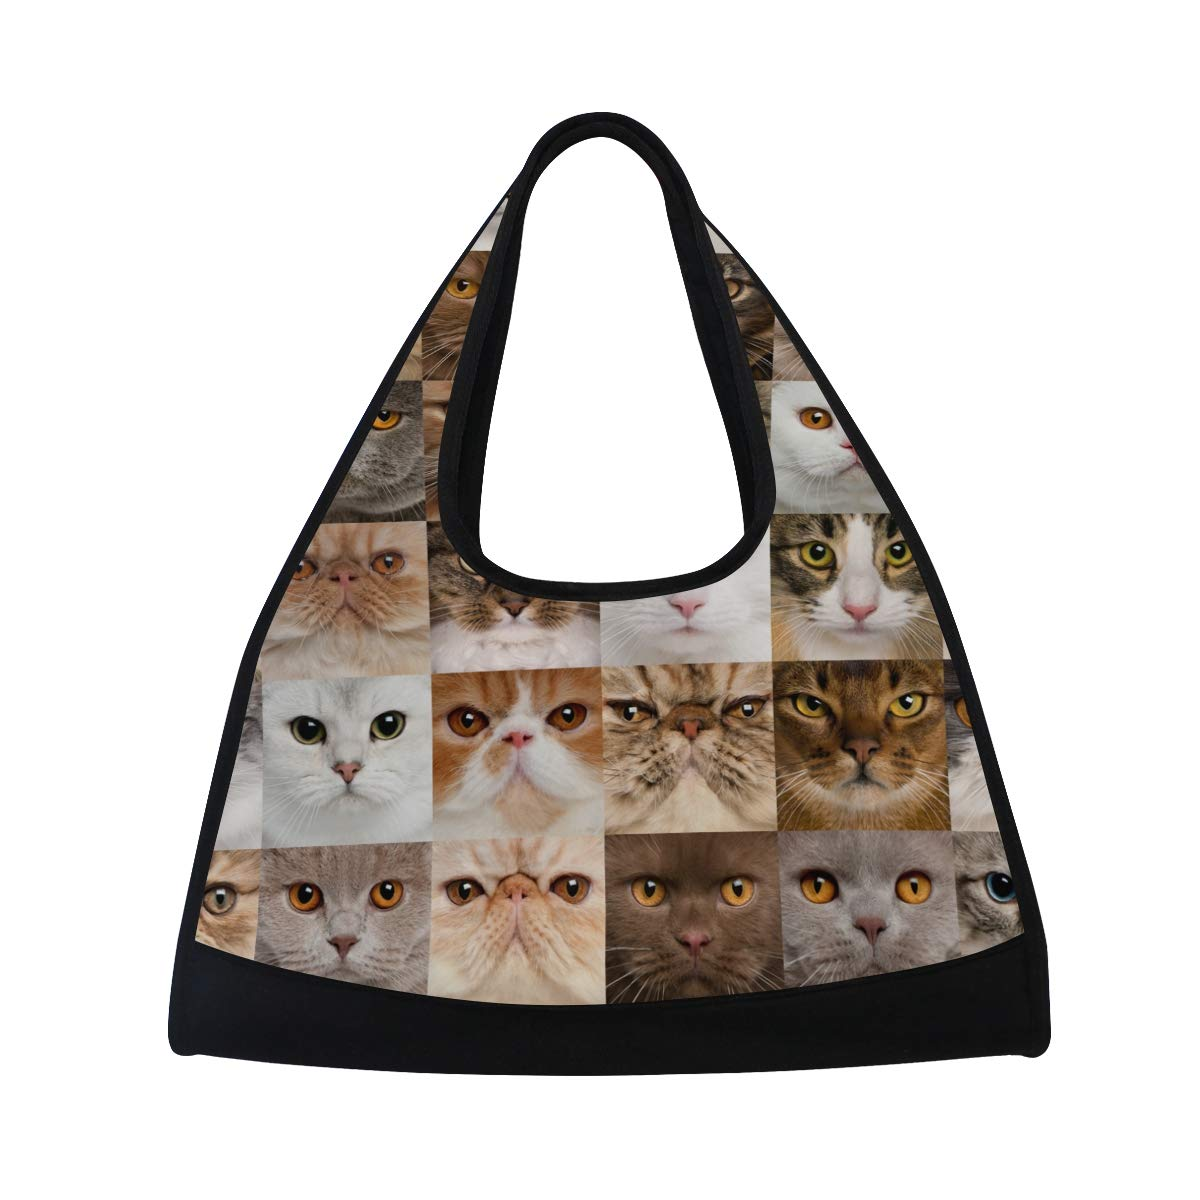 Gym Bag Sports Holdall Collage Of 36 Cat Heads Canvas Shoulder Bag Overnight Travel Bag for Men and Women